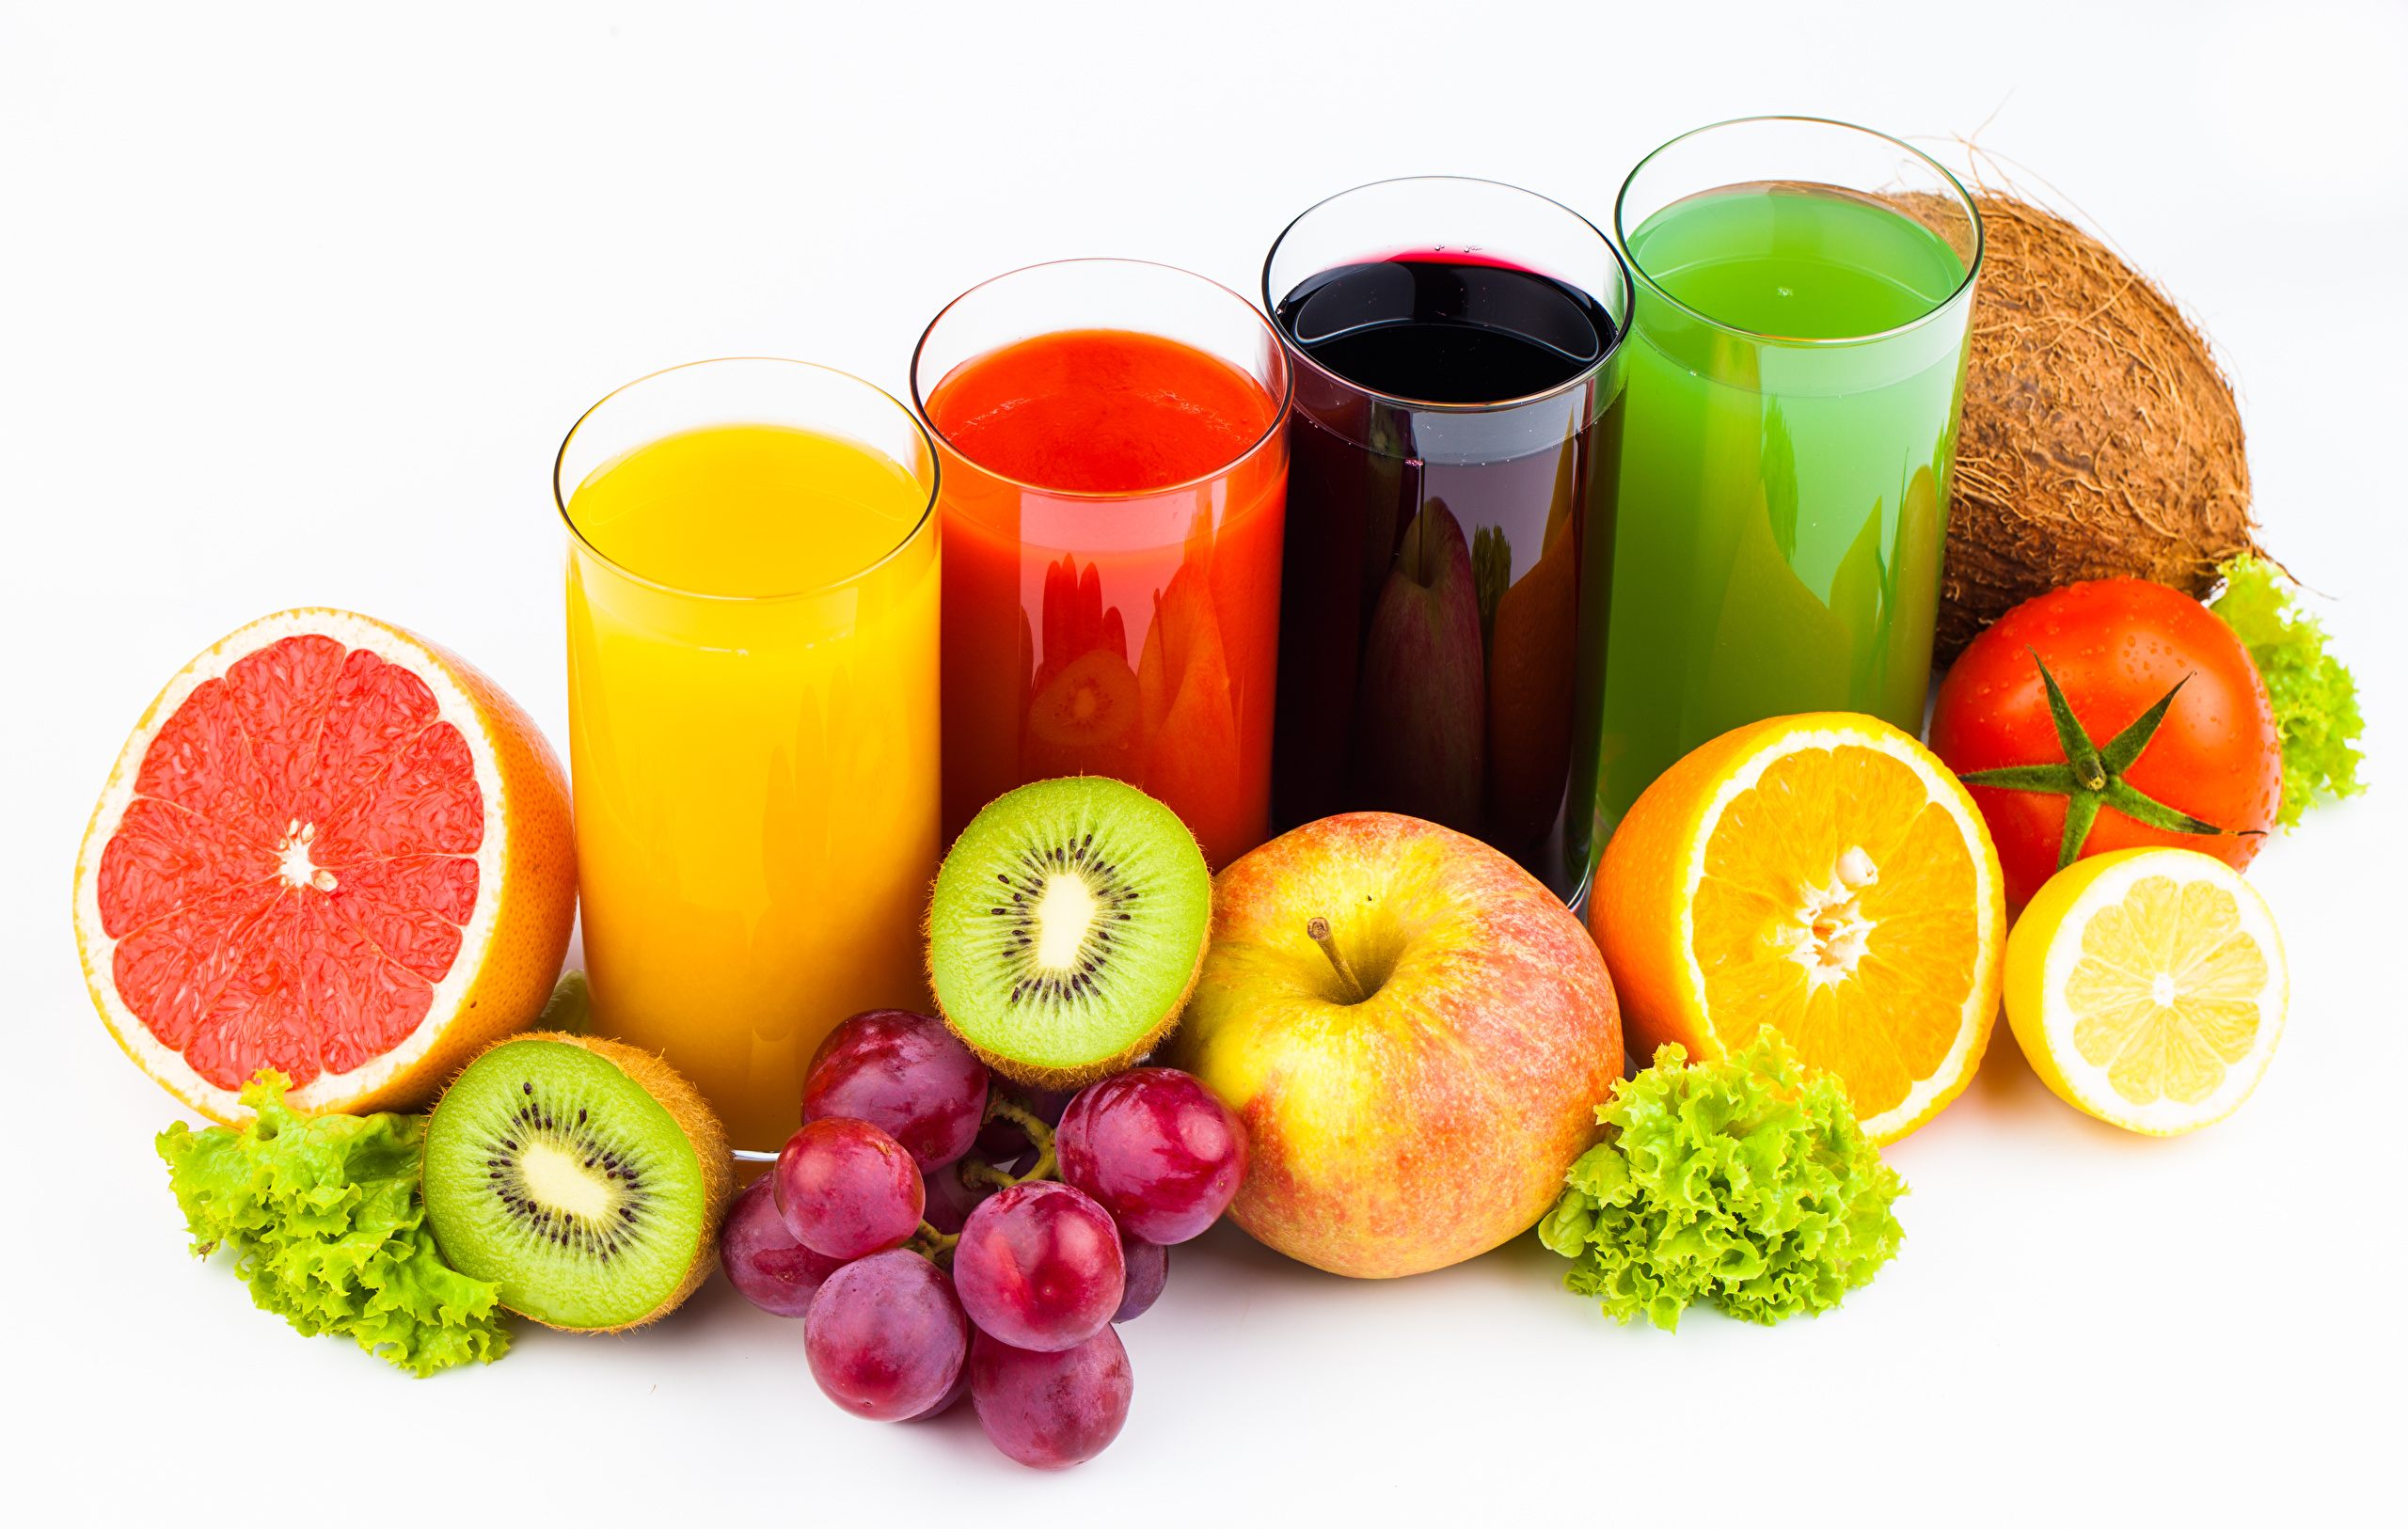 questionnaire buying behaviour of different packed fruit juice